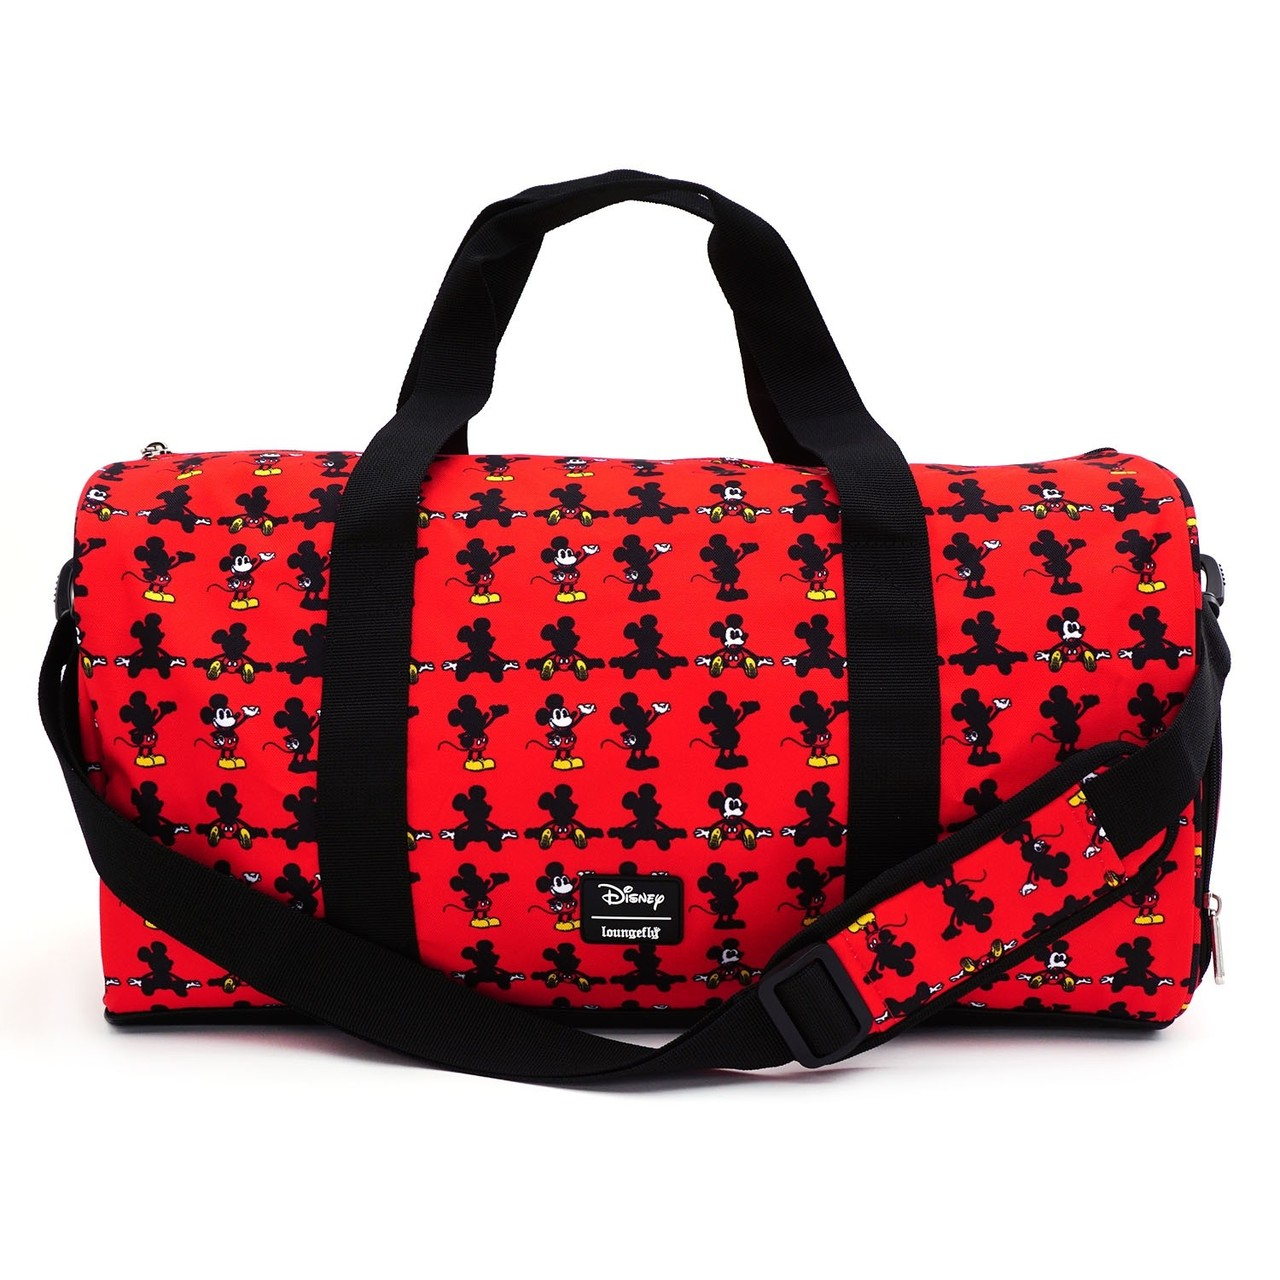 Disney - Loungefly : Sac de voyage Mickey Mouse